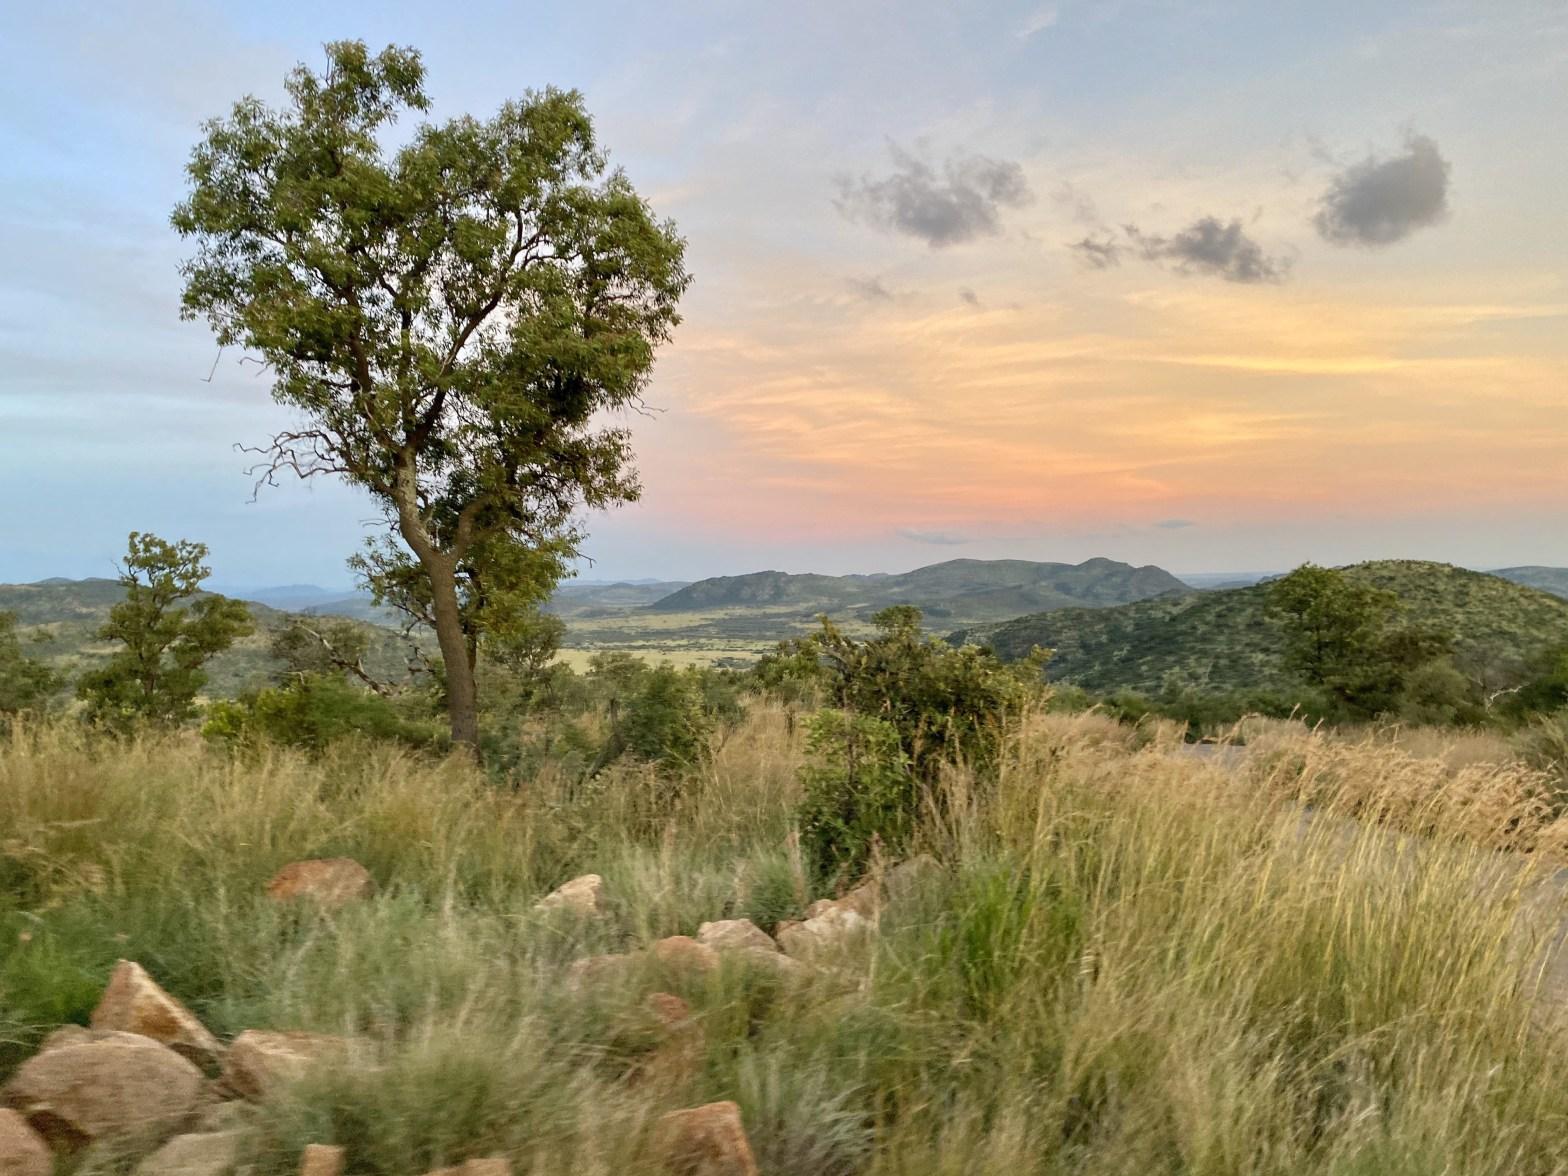 Skyline at Pilanesberg National Park